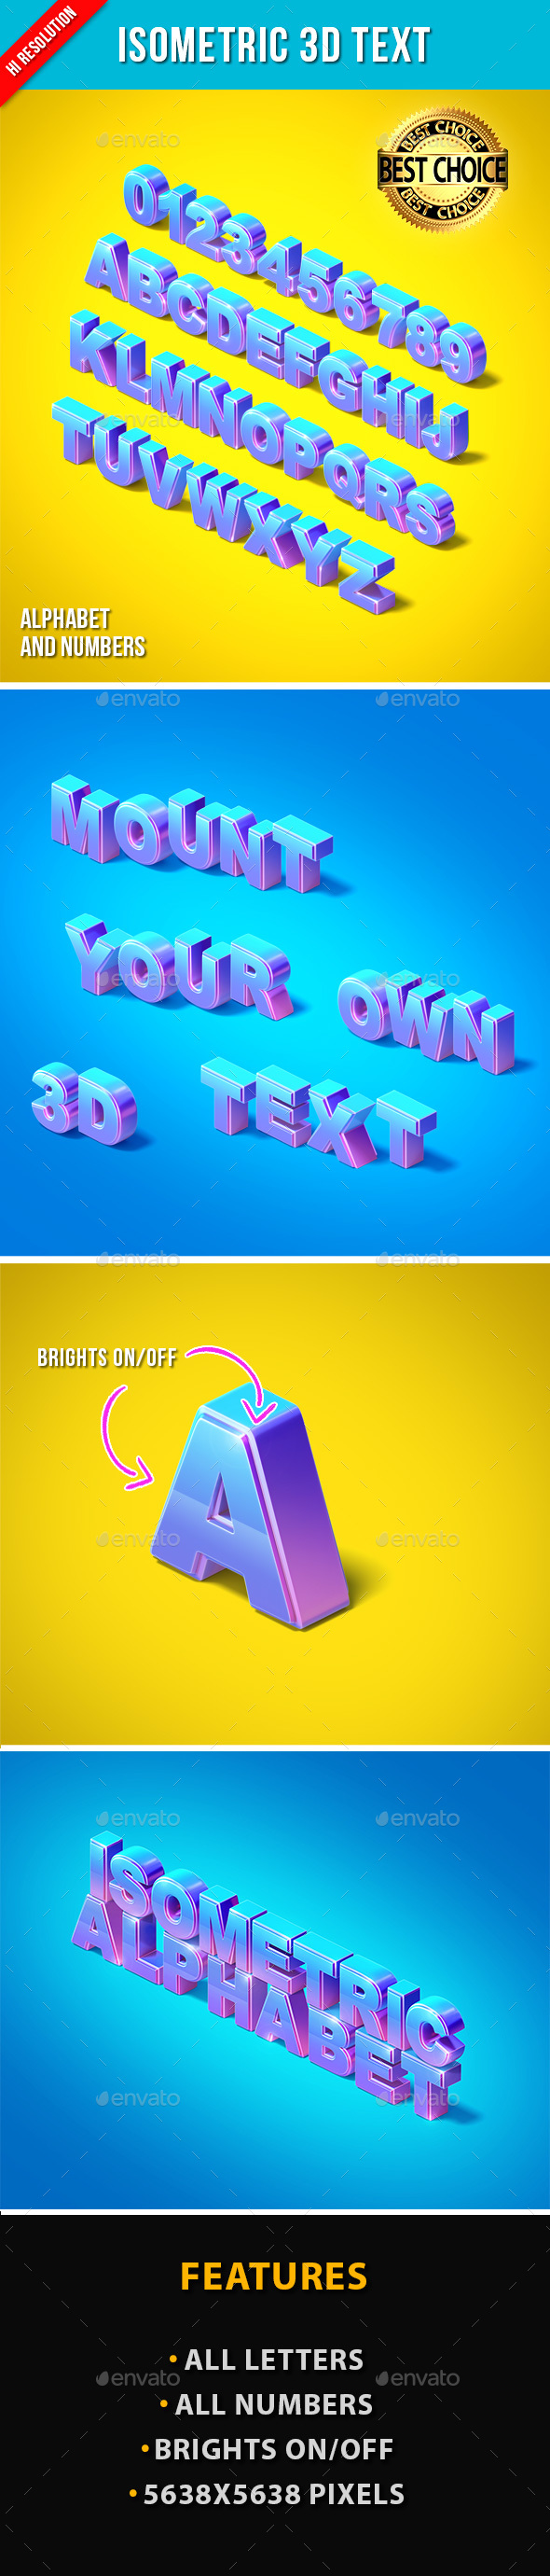 Isometric 3D Text - Text 3D Renders